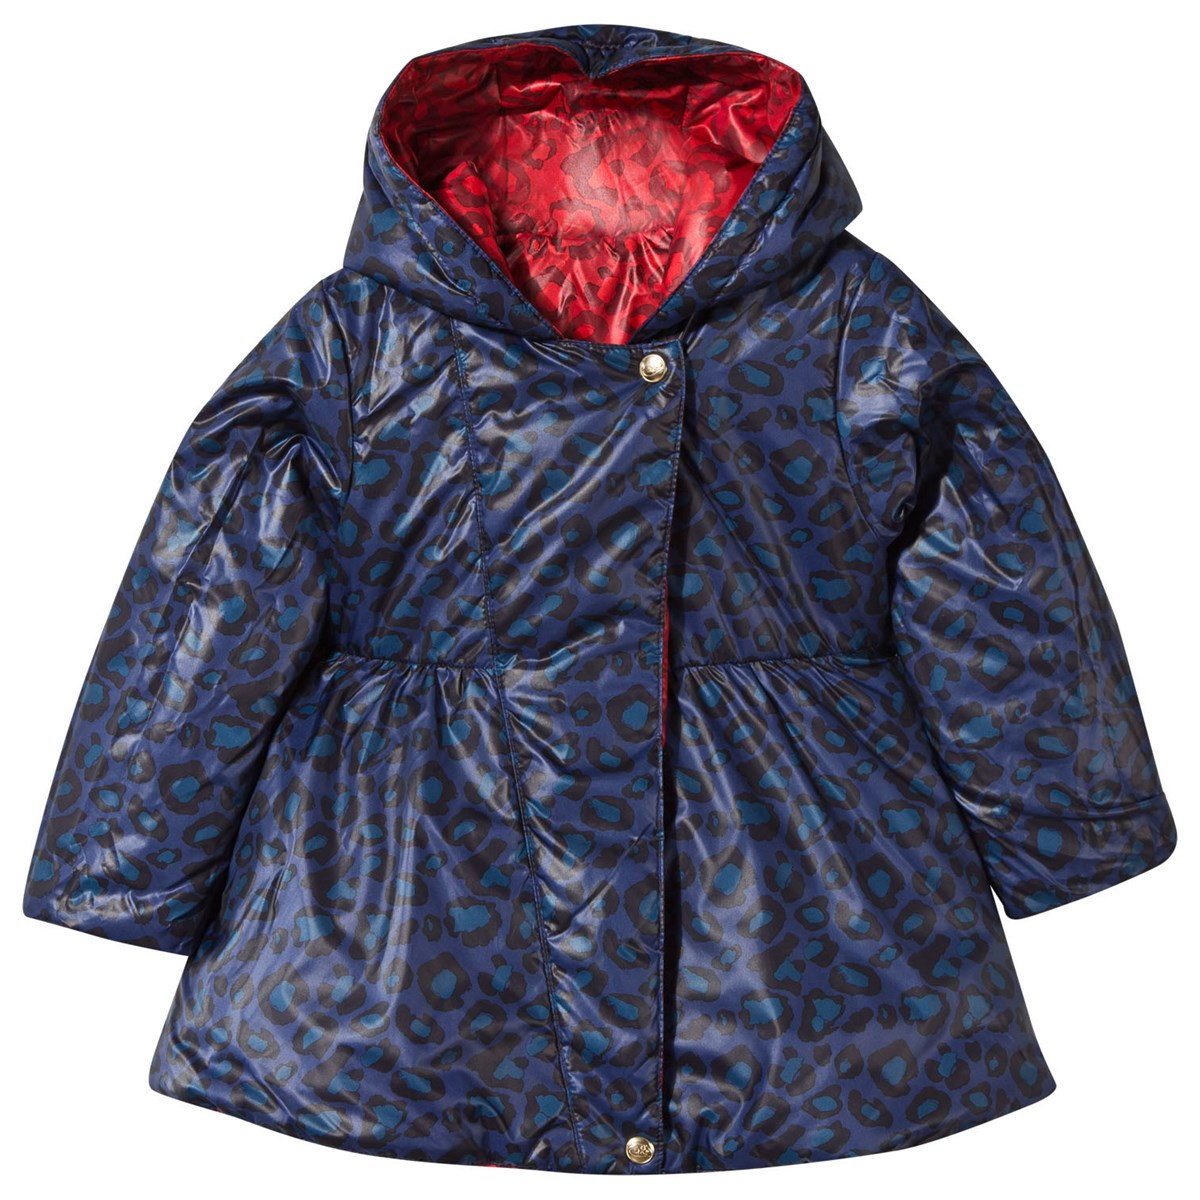 086b7546ad6c Little Marc Jacobs Navy and Red Reversible Leopard Print Puffer Coat ...